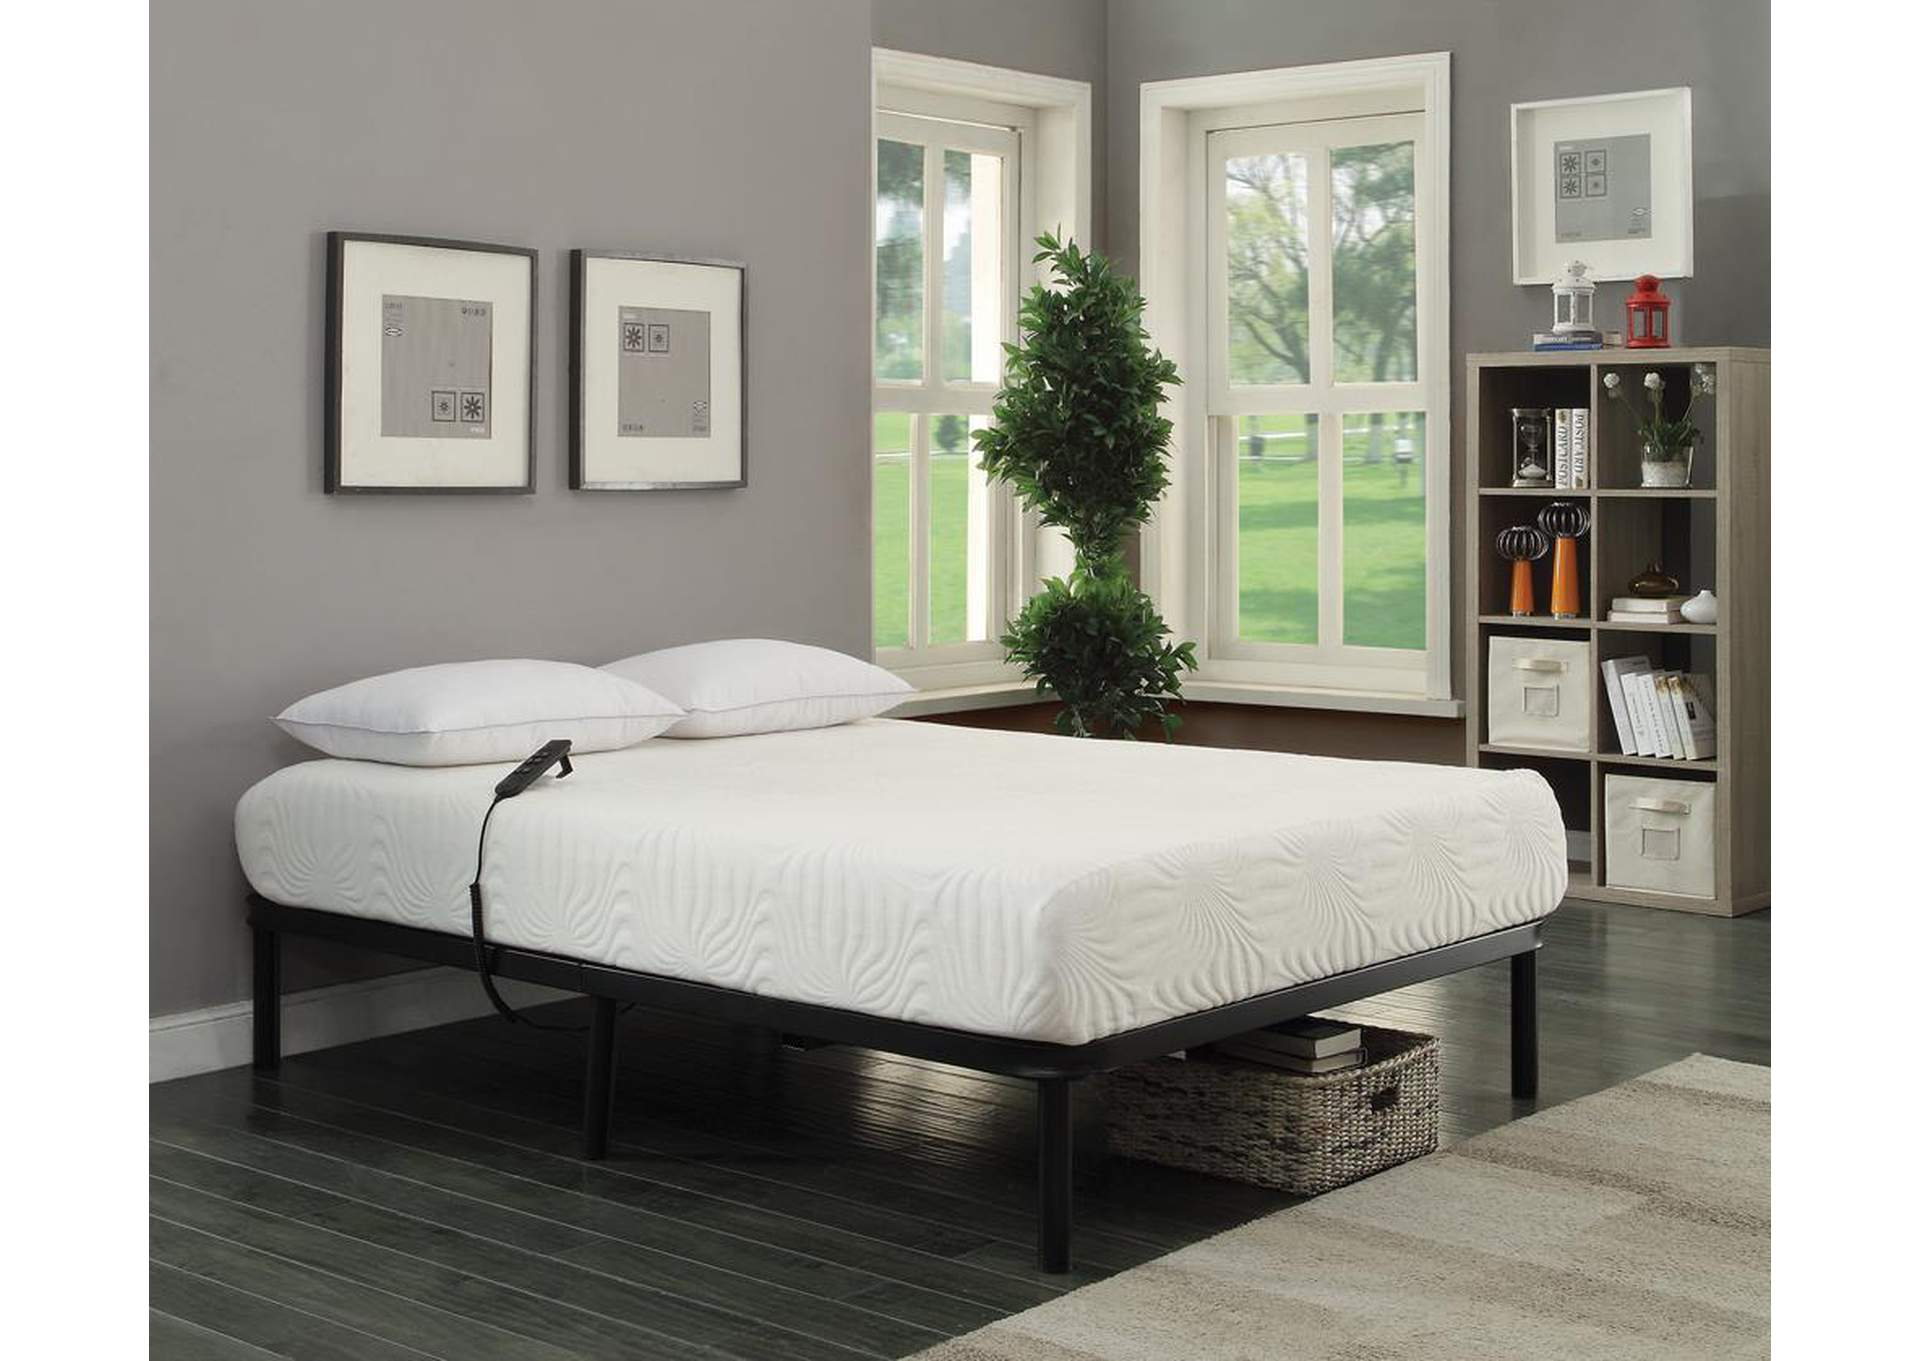 Stanhope Black Adjustable Queen Bed,Coaster Furniture